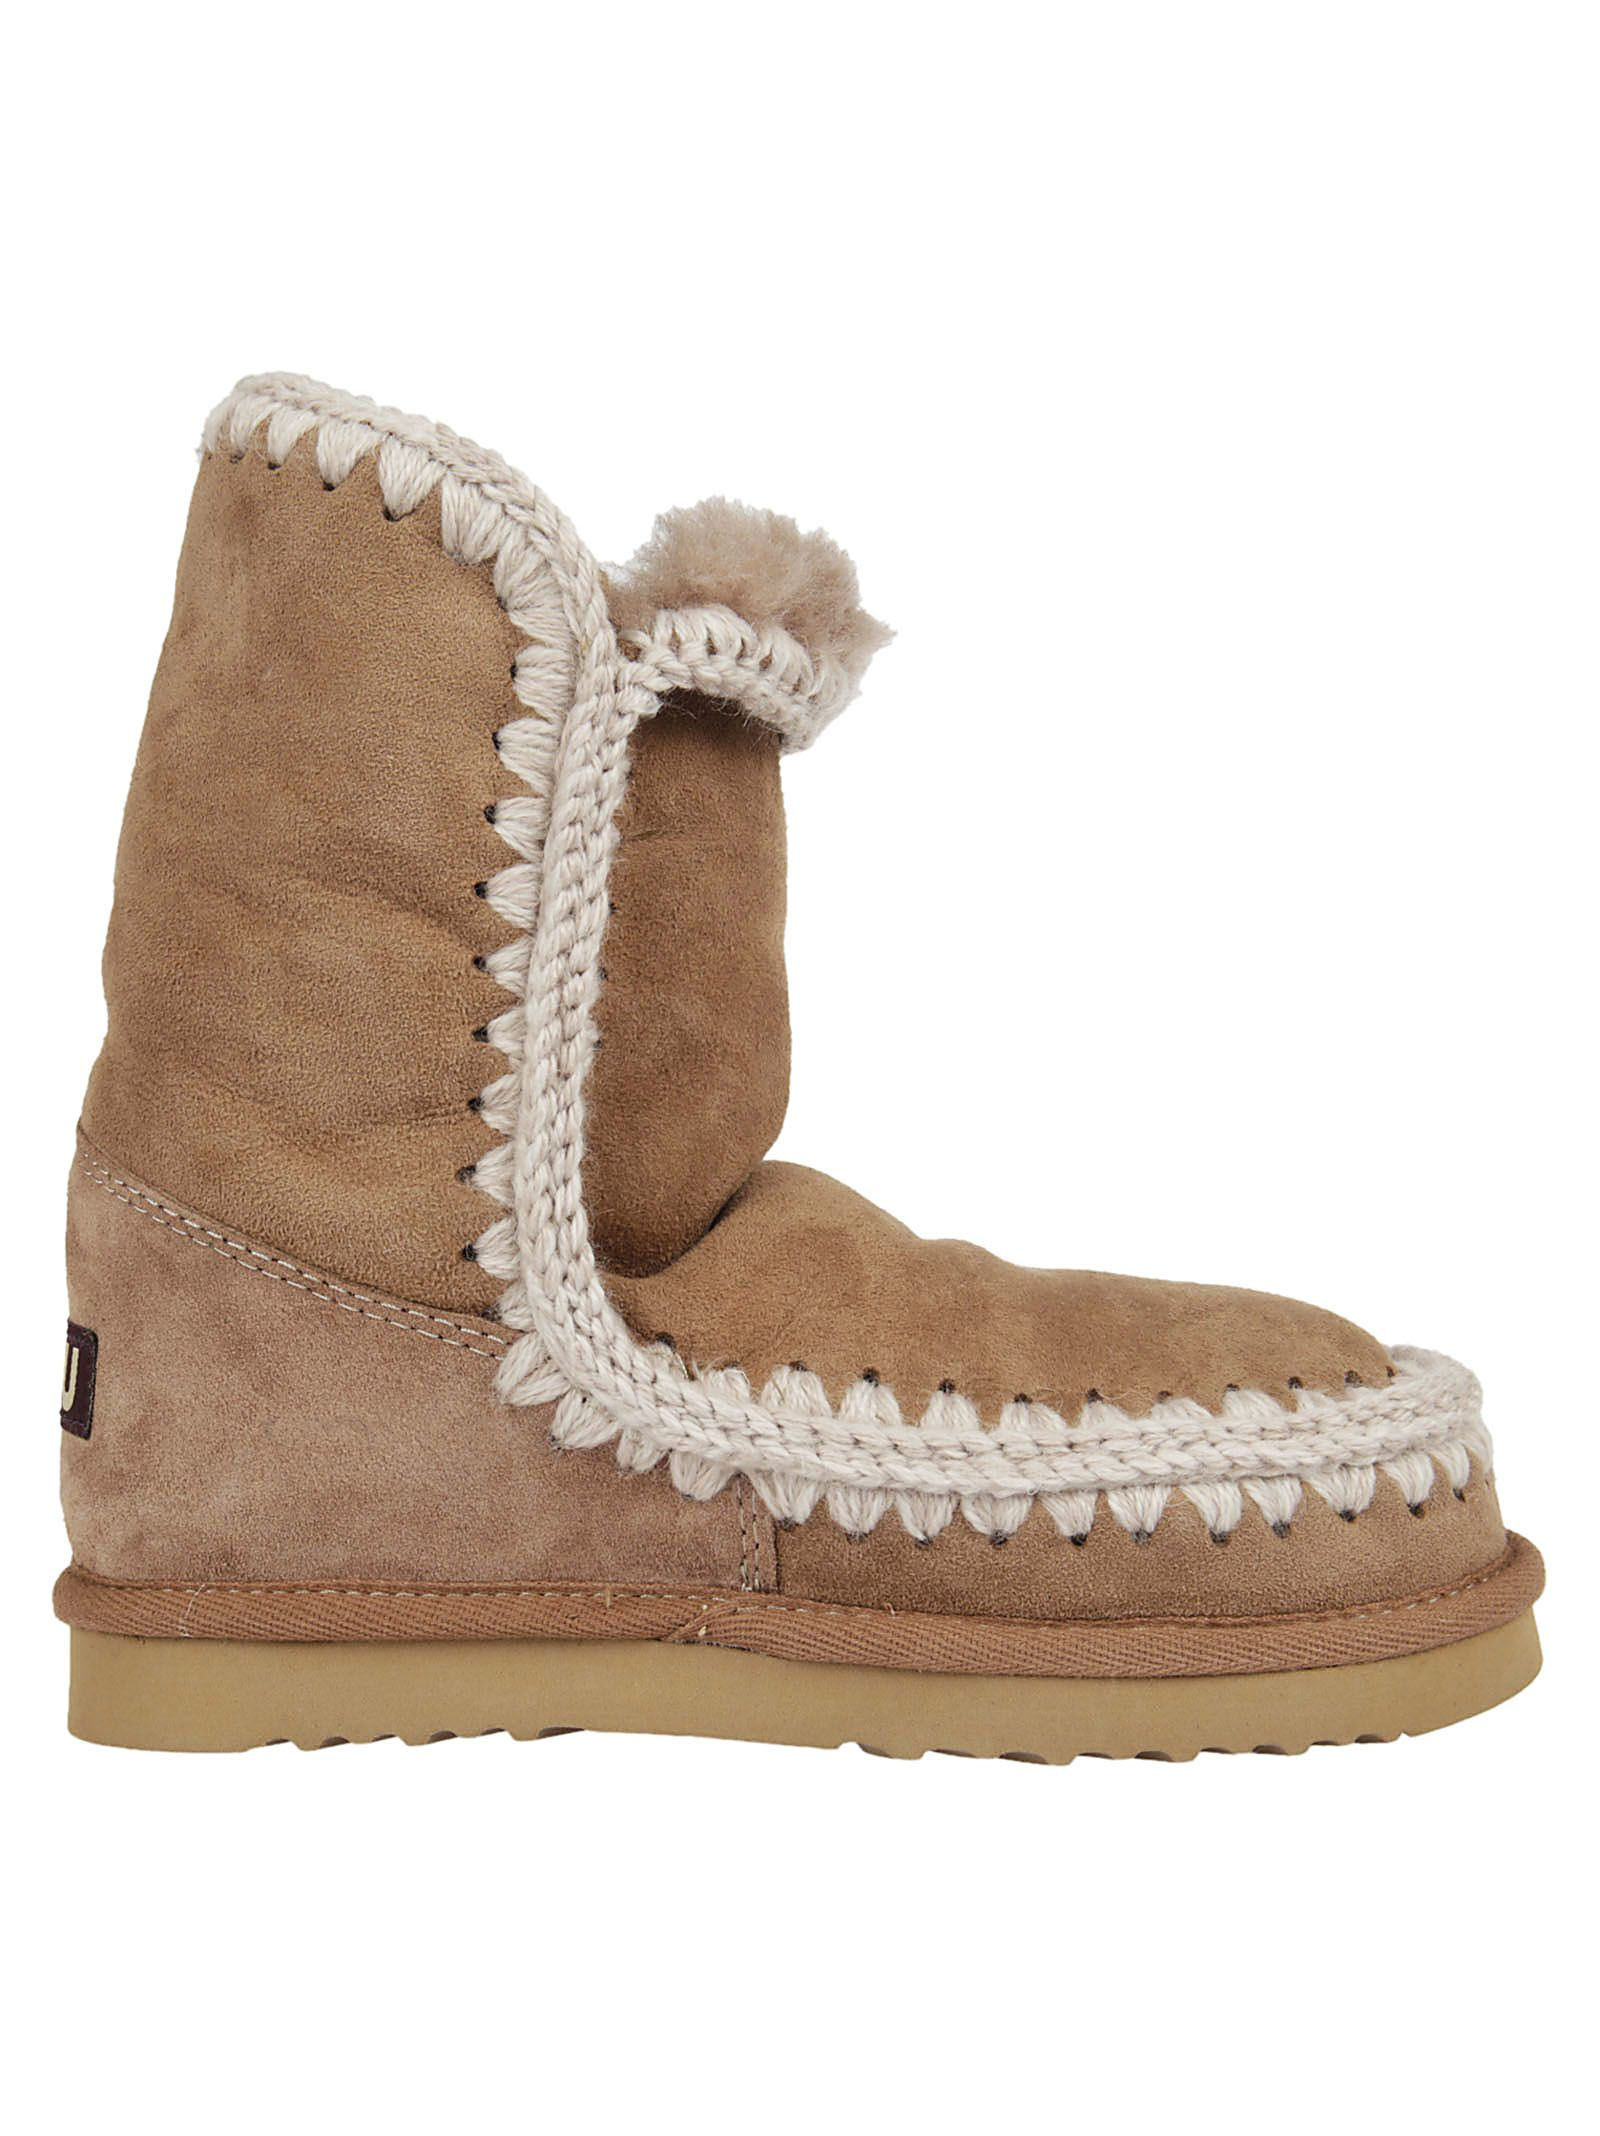 2017 New Cheap Womens Mou 'eskimo' Boots Best